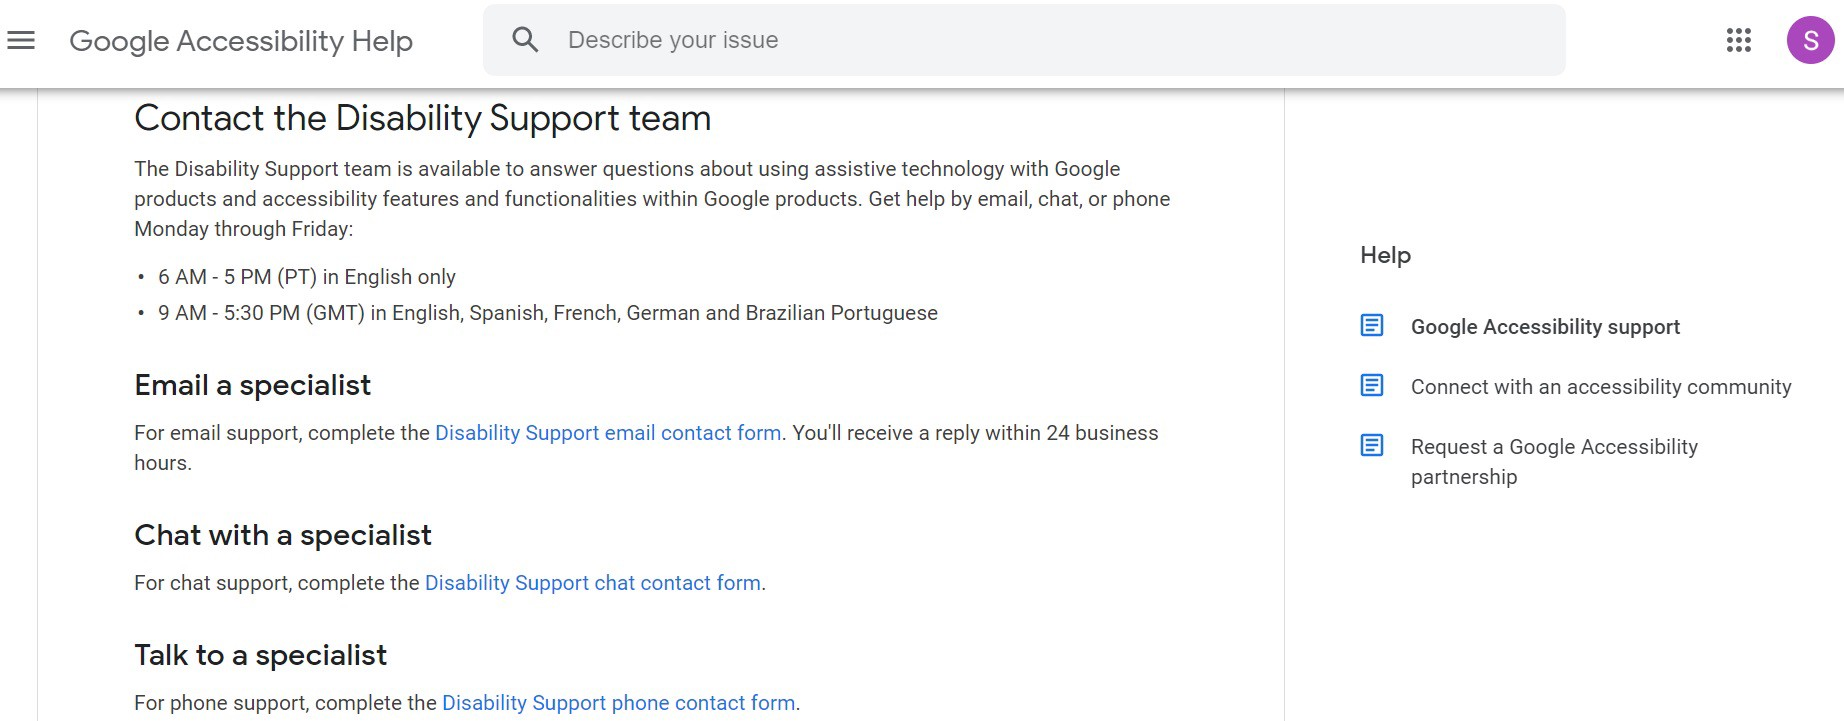 Screenshot of Google accessibility help page showing email, chat, voice and online help